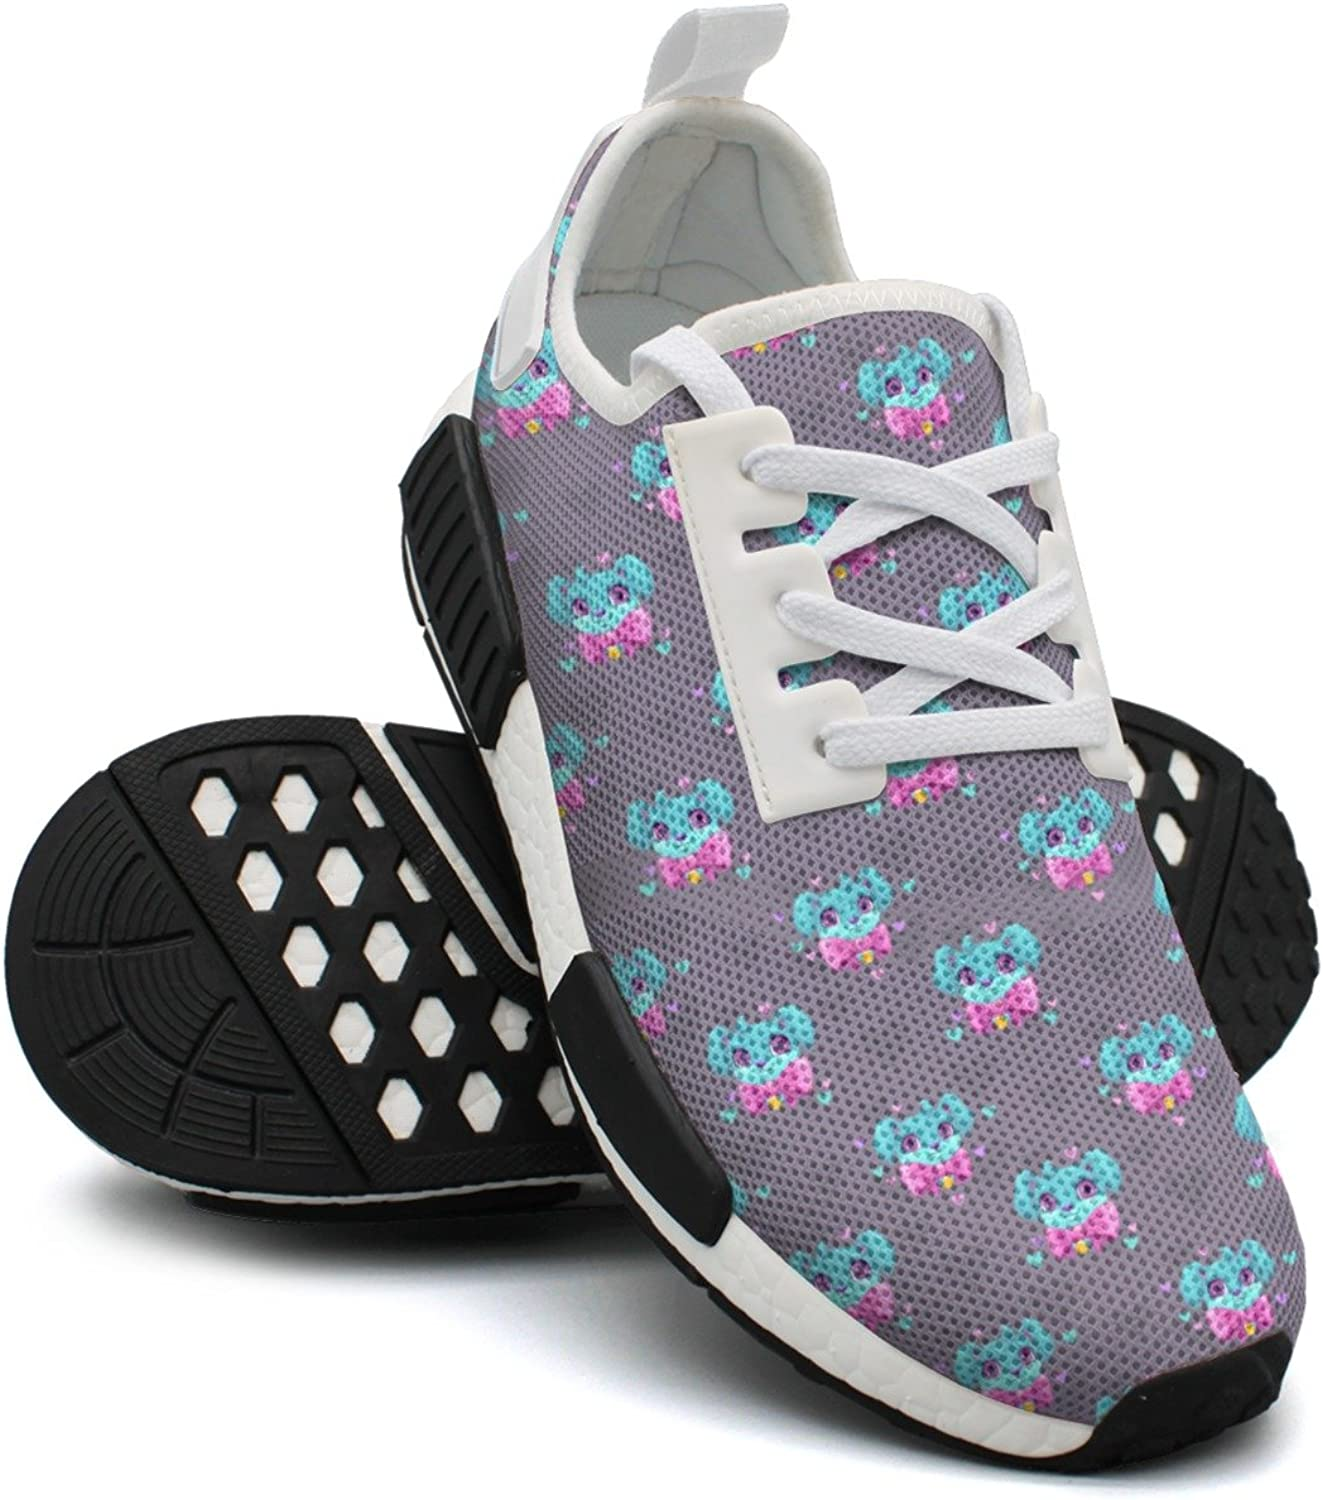 Dogs and Hearts Women's Exclusive Lightweight Sneaker Gym Outdoor Running shoes